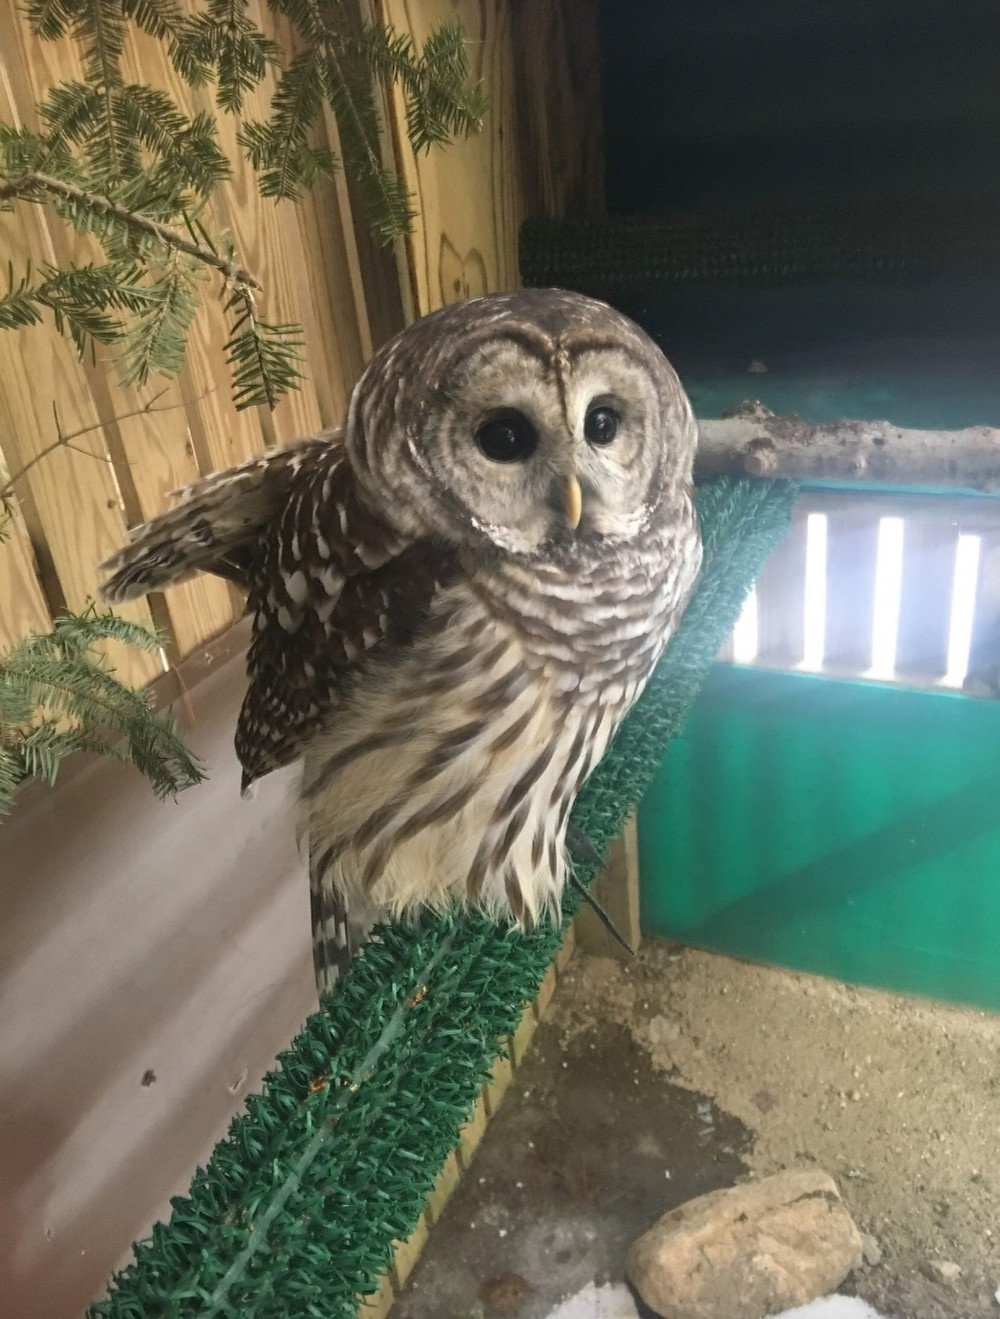 Varia the Barred Owl